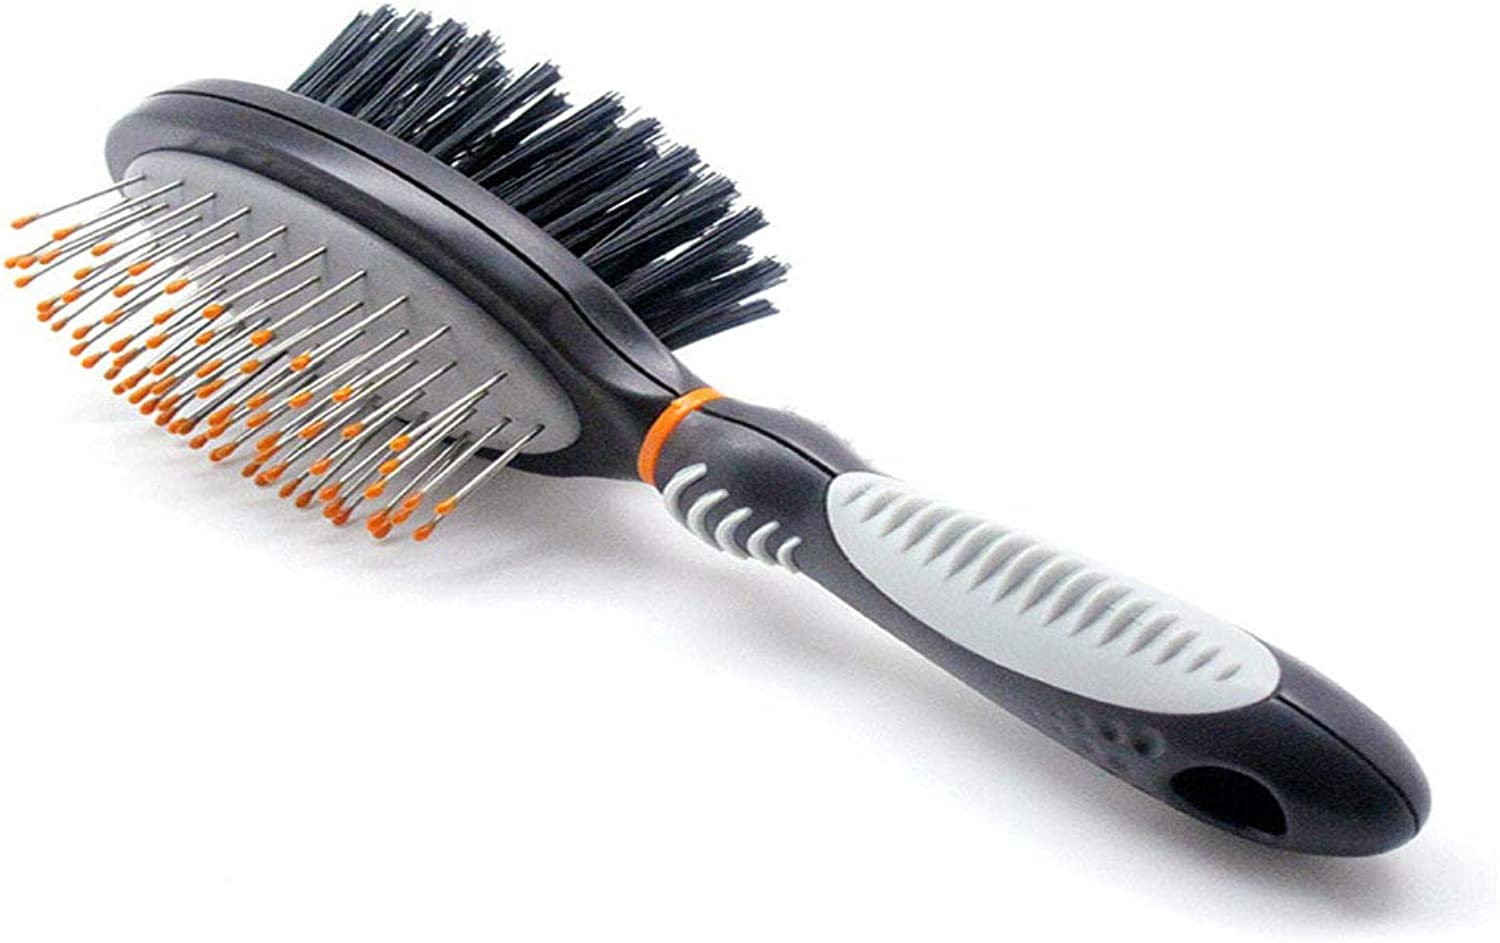 DoubleSided Pet Brush for Grooming Massaging Dogs, Cats Other Animals – Fur Detangling Pins Coat Smoothing Slicker Bristles, Double The Brushing Groom Power in One Tool